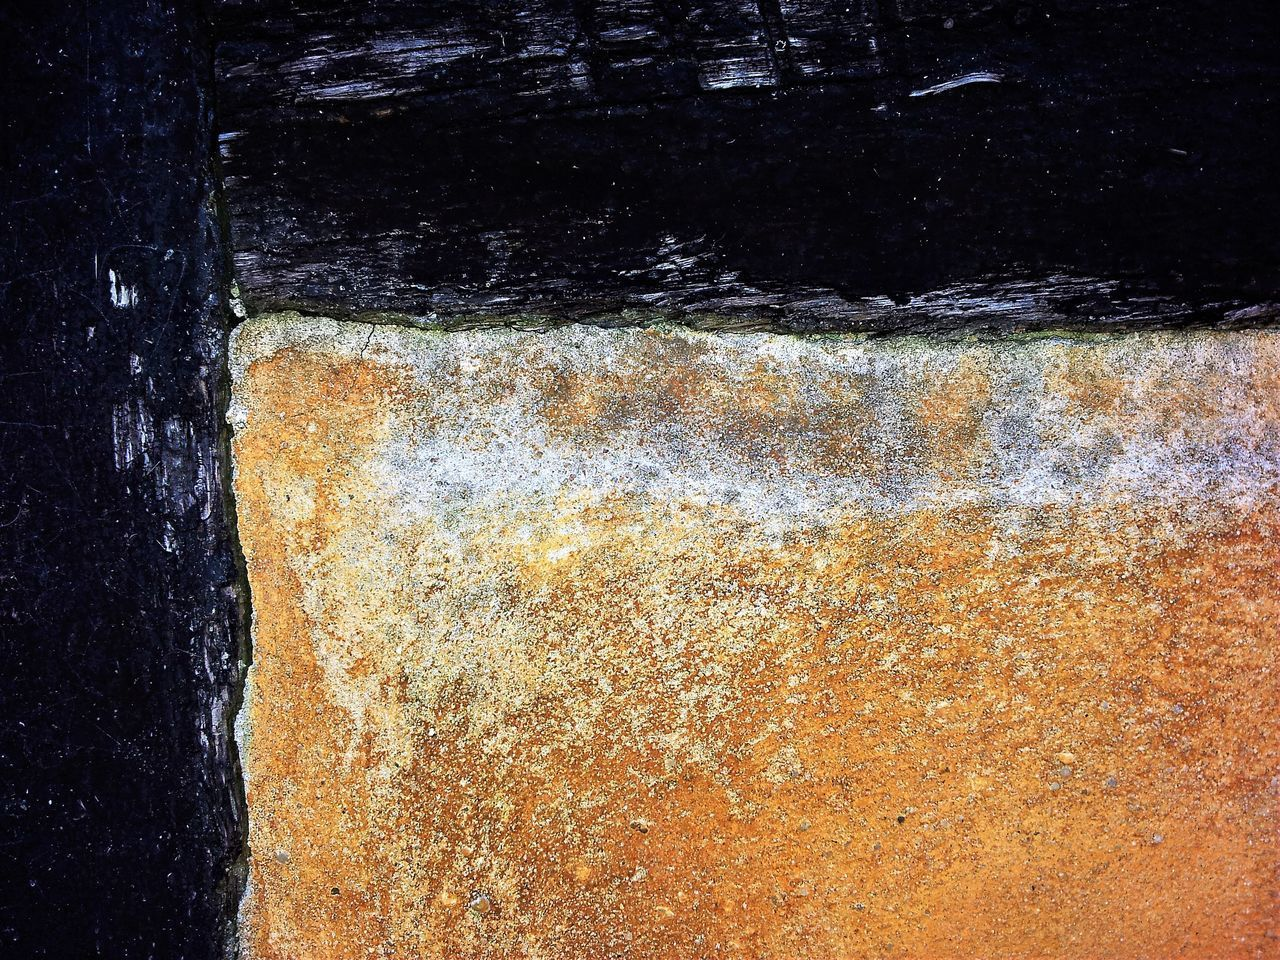 Aarhus, Denmark Architecture Built Structure Close-up Day Den Gamle By Mur No People Outdoors Textured